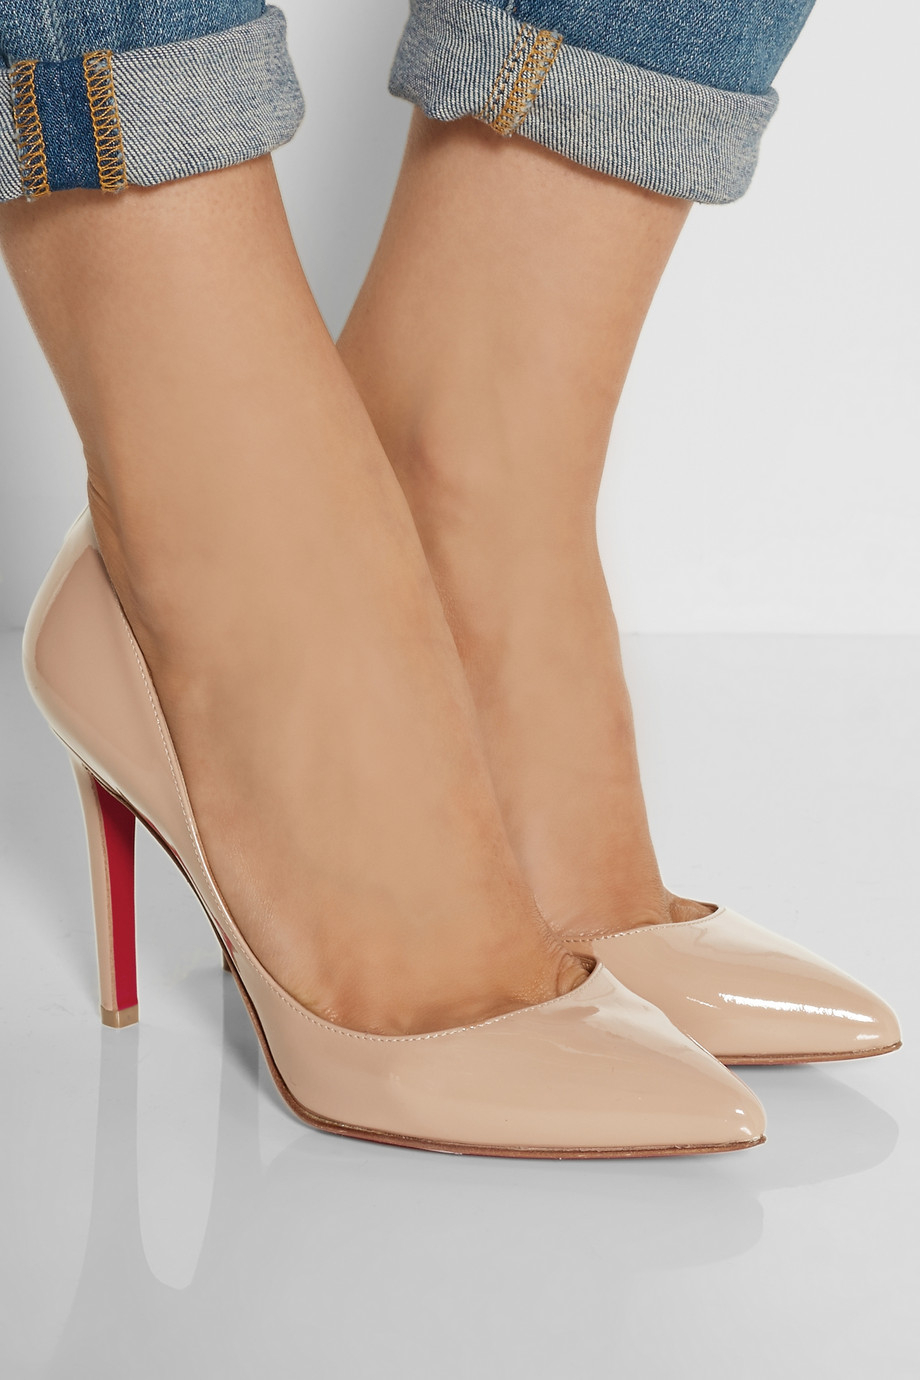 507b8cf8a1 Christian Louboutin The Pigalle 100 Patent-Leather Pumps in Natural - Lyst